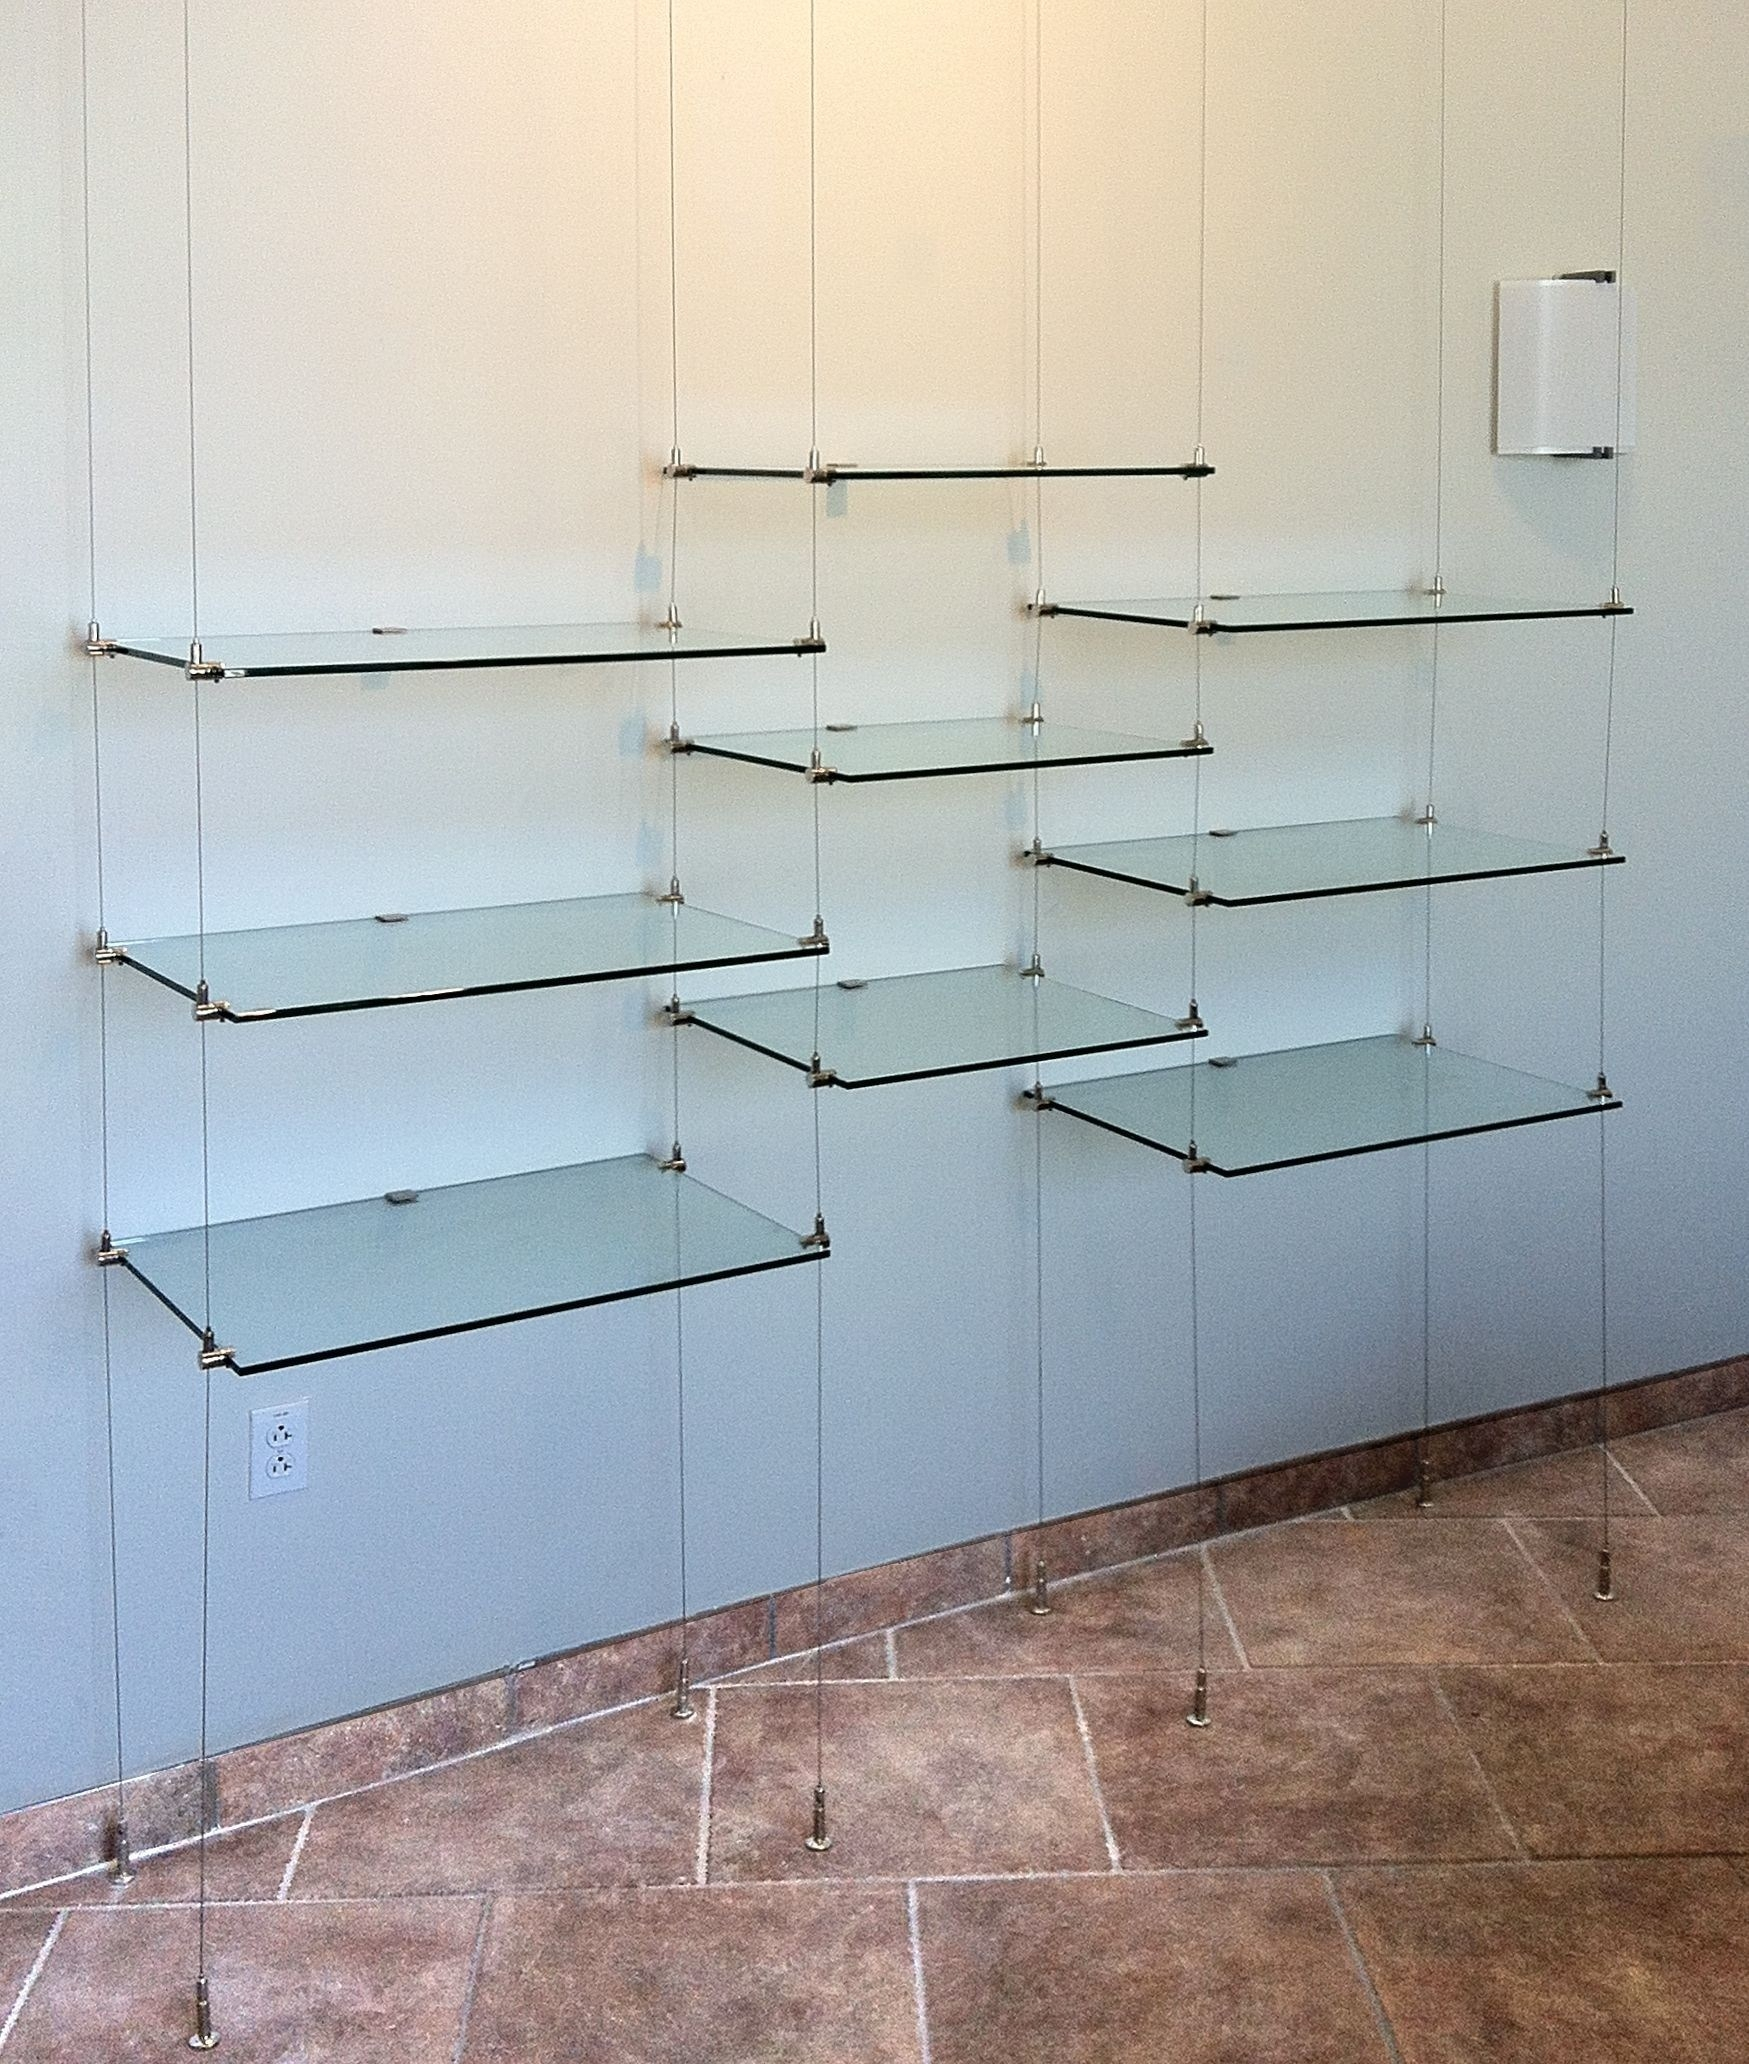 Hanging Glass Shelves From Ceiling Pranksenders